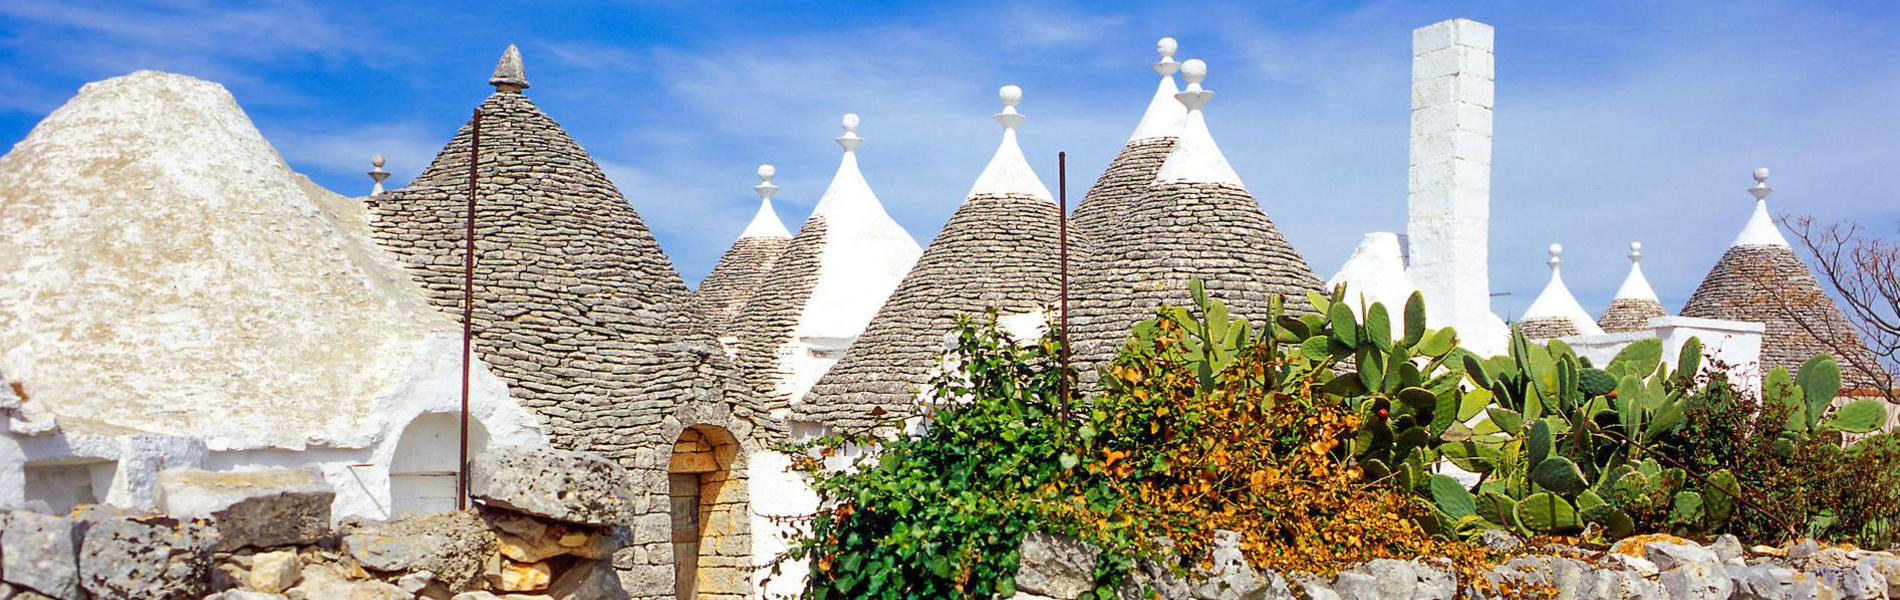 Dächer der traditionellen Rundhäuser Trulli in Apulien